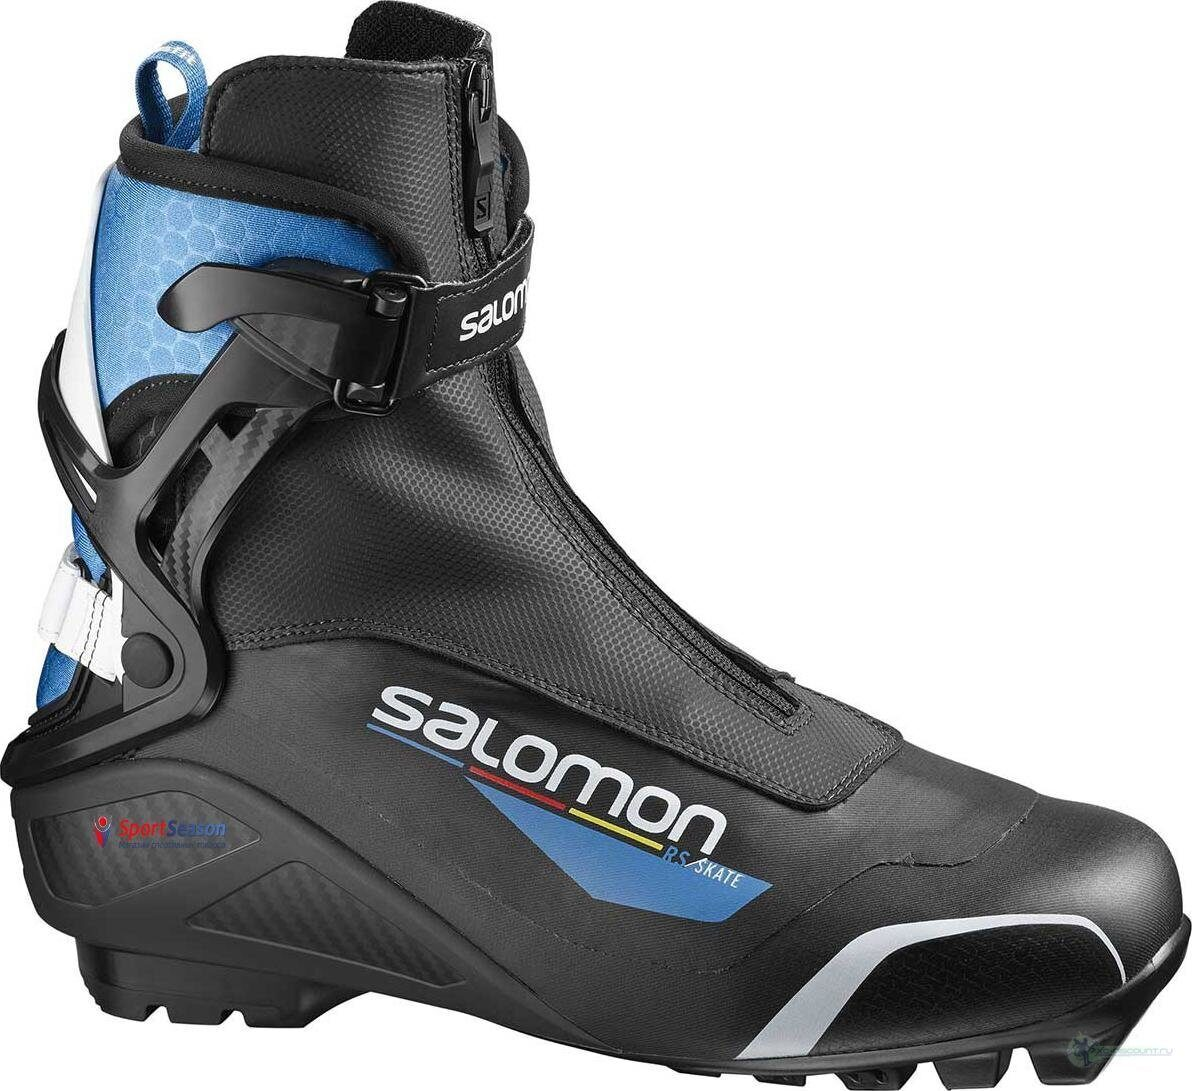 Лыжные ботинки SALOMON RS Carbon Prolink 405543 NNN